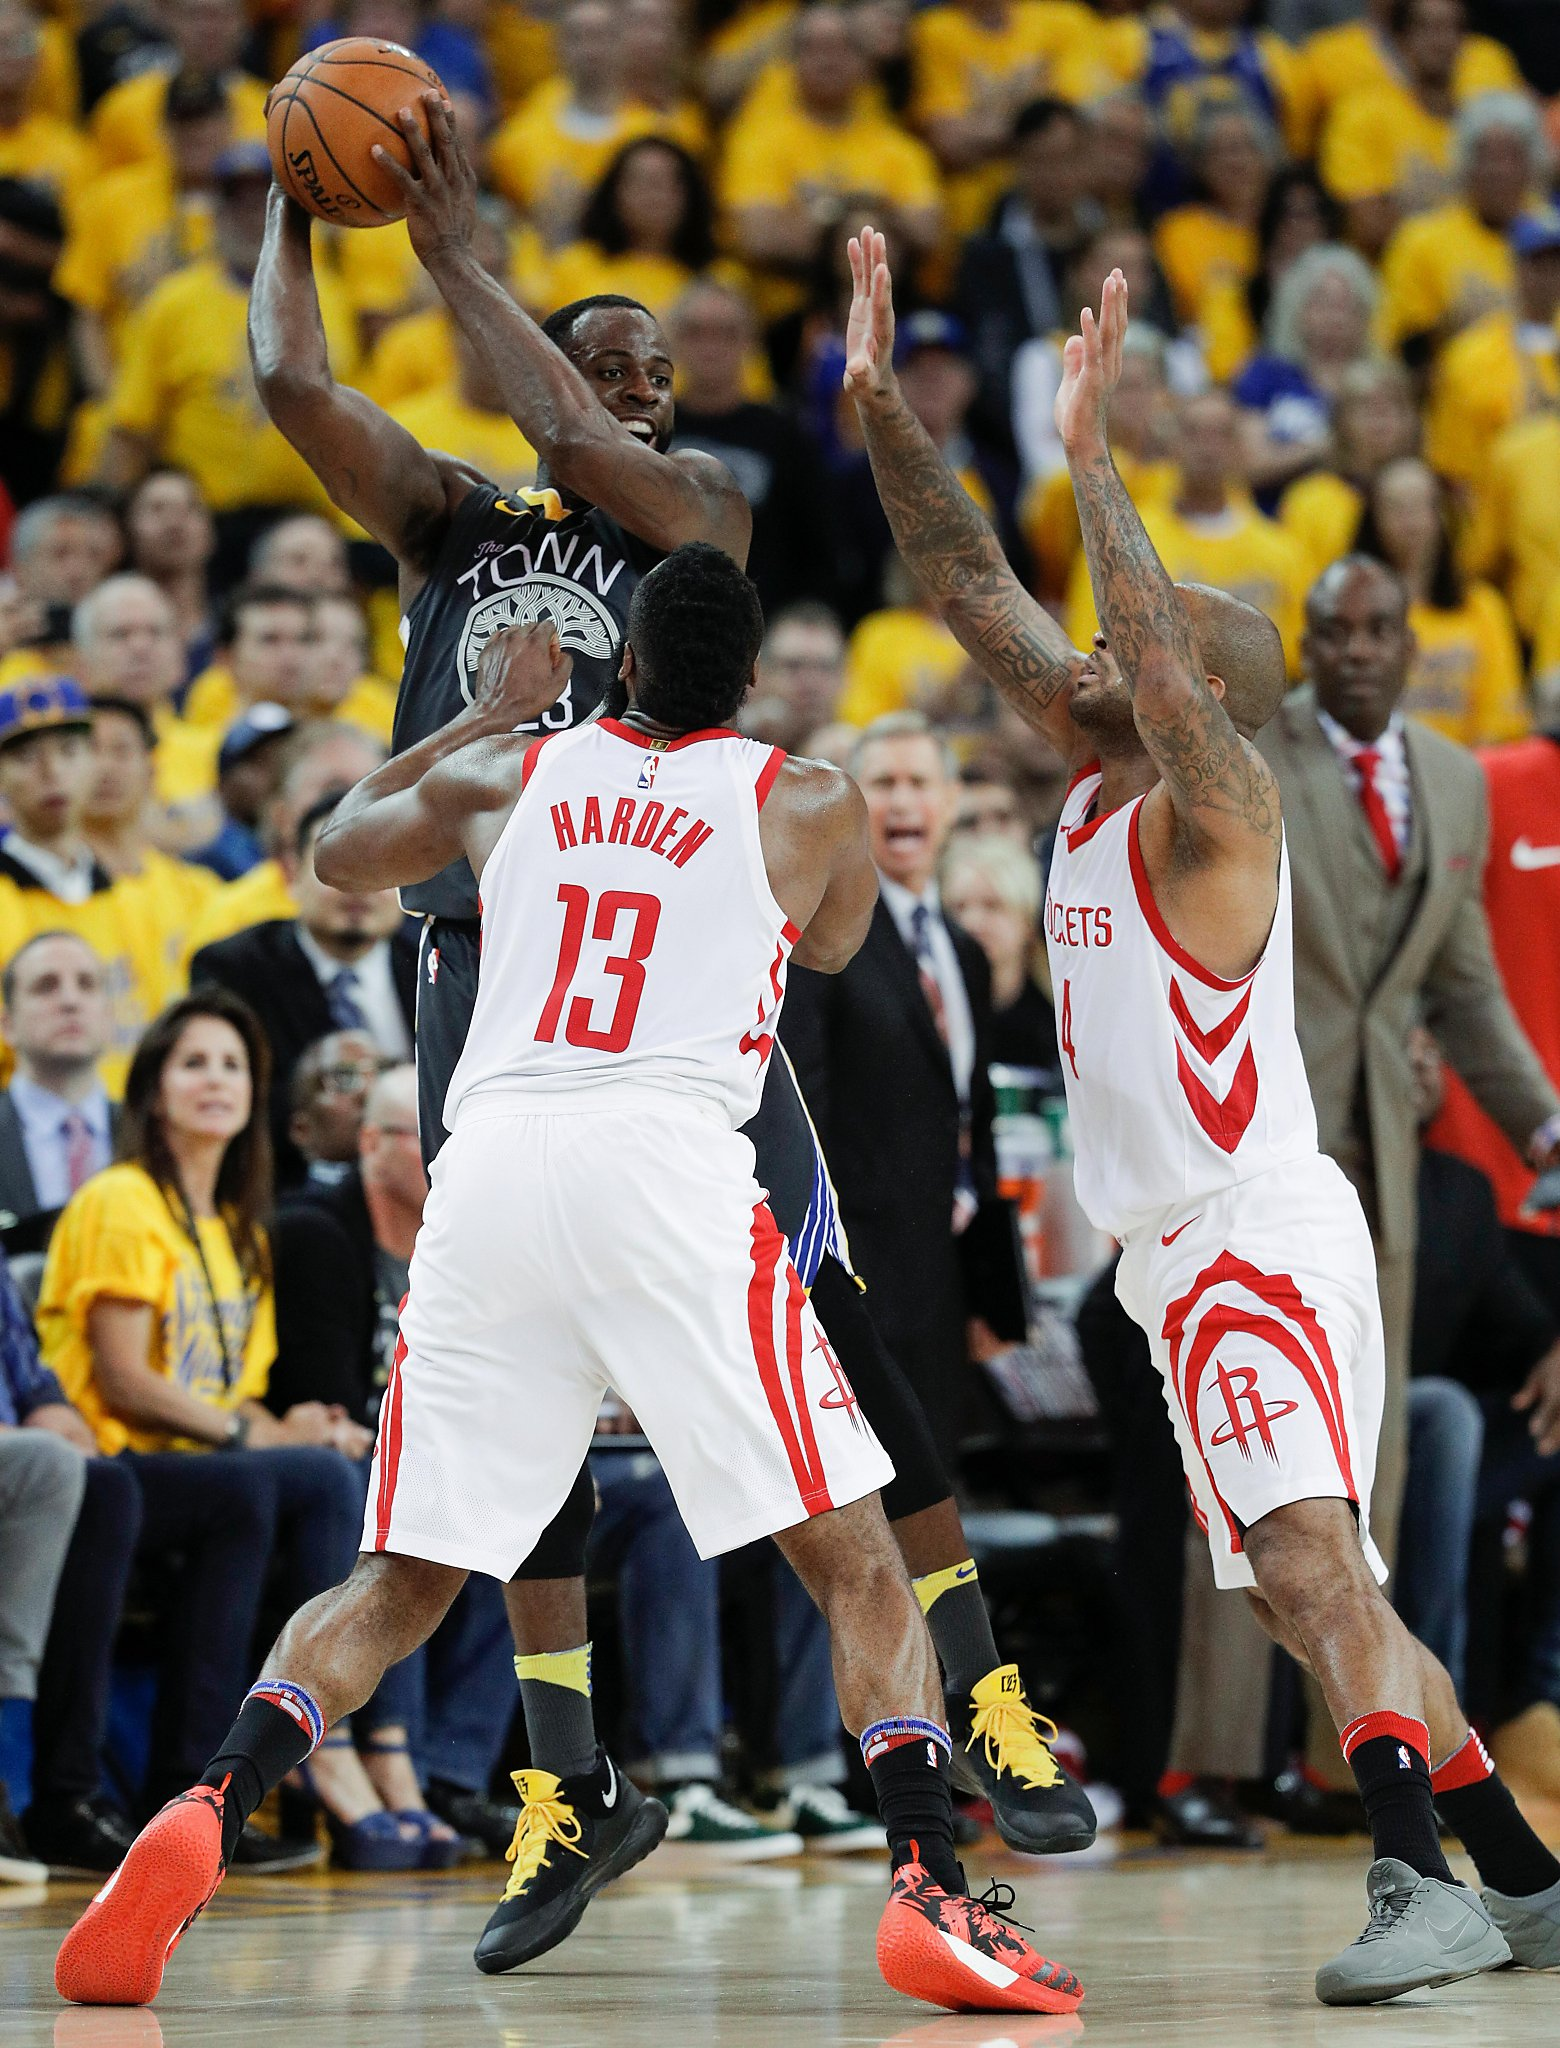 39b99231b57 Now it s nervous time for the Warriors - SFChronicle.com